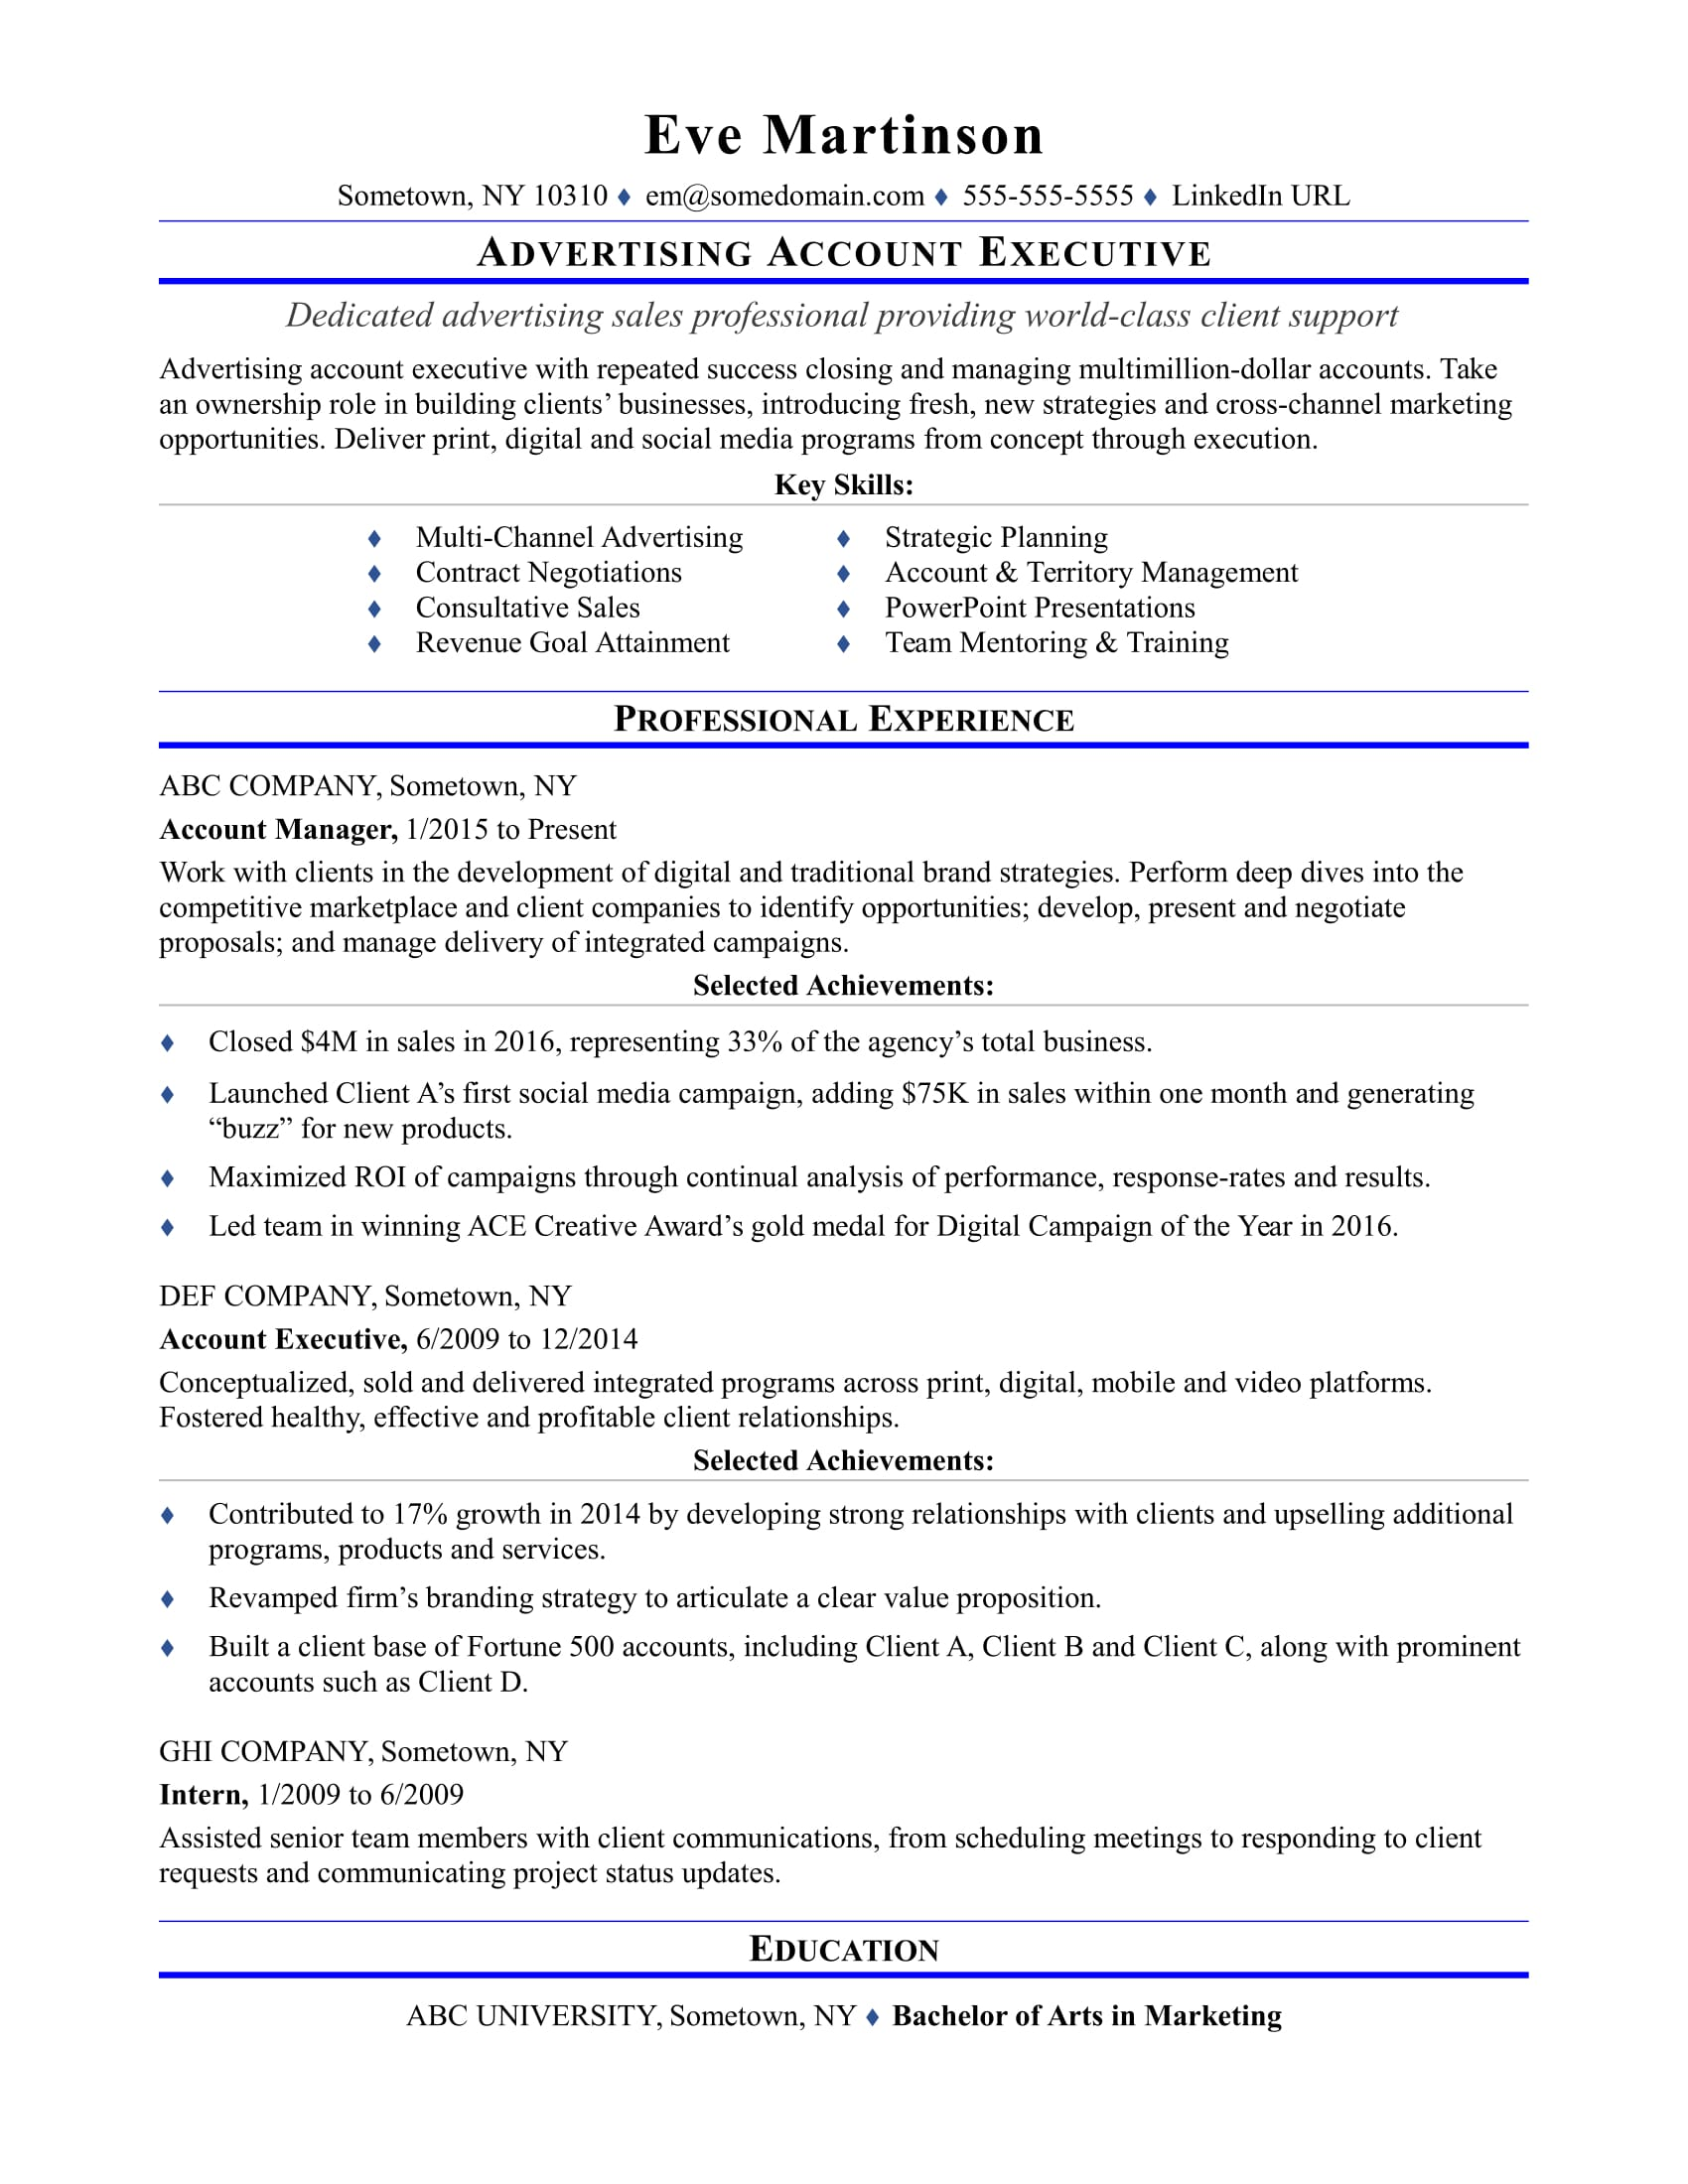 sample resume for an advertising account executive monster format patient companion bar Resume Account Executive Resume Format Download